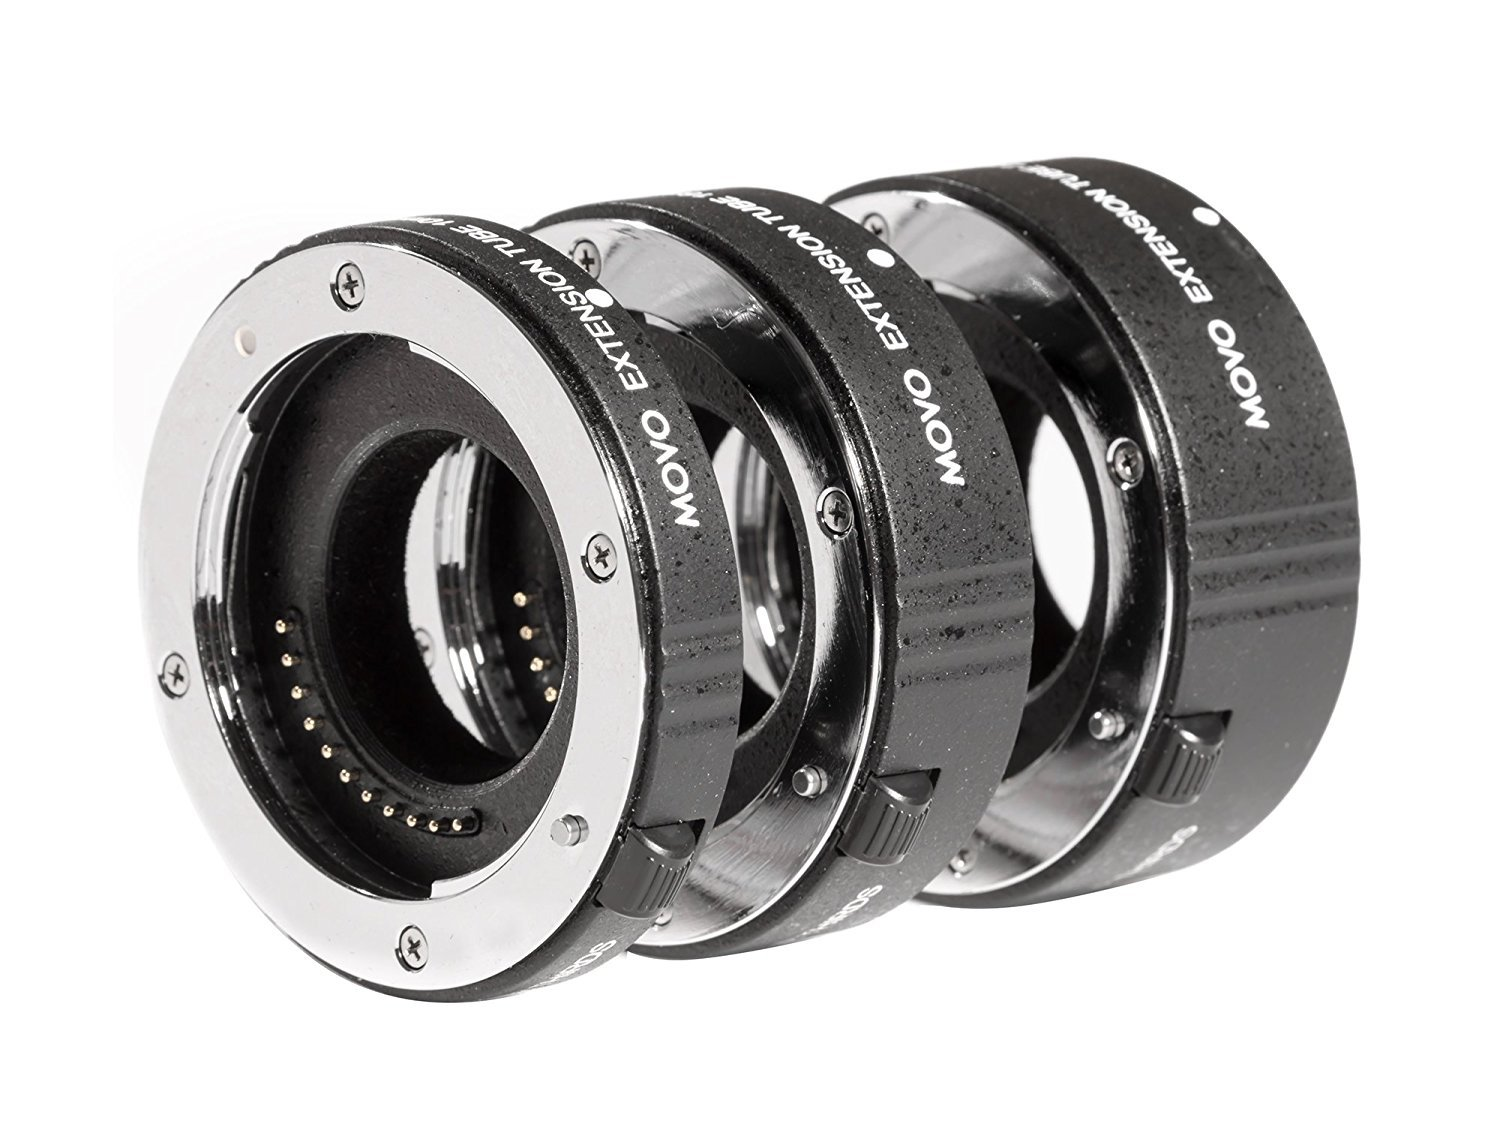 Movo MT-CM47 3-Piece AF Chrome Macro Extension Tube Set for Canon EOS M, M2, M3, M5, M6, M10, M100 Mirrorless Cameras with 10mm, 16mm and 21mm Tubes by Movo